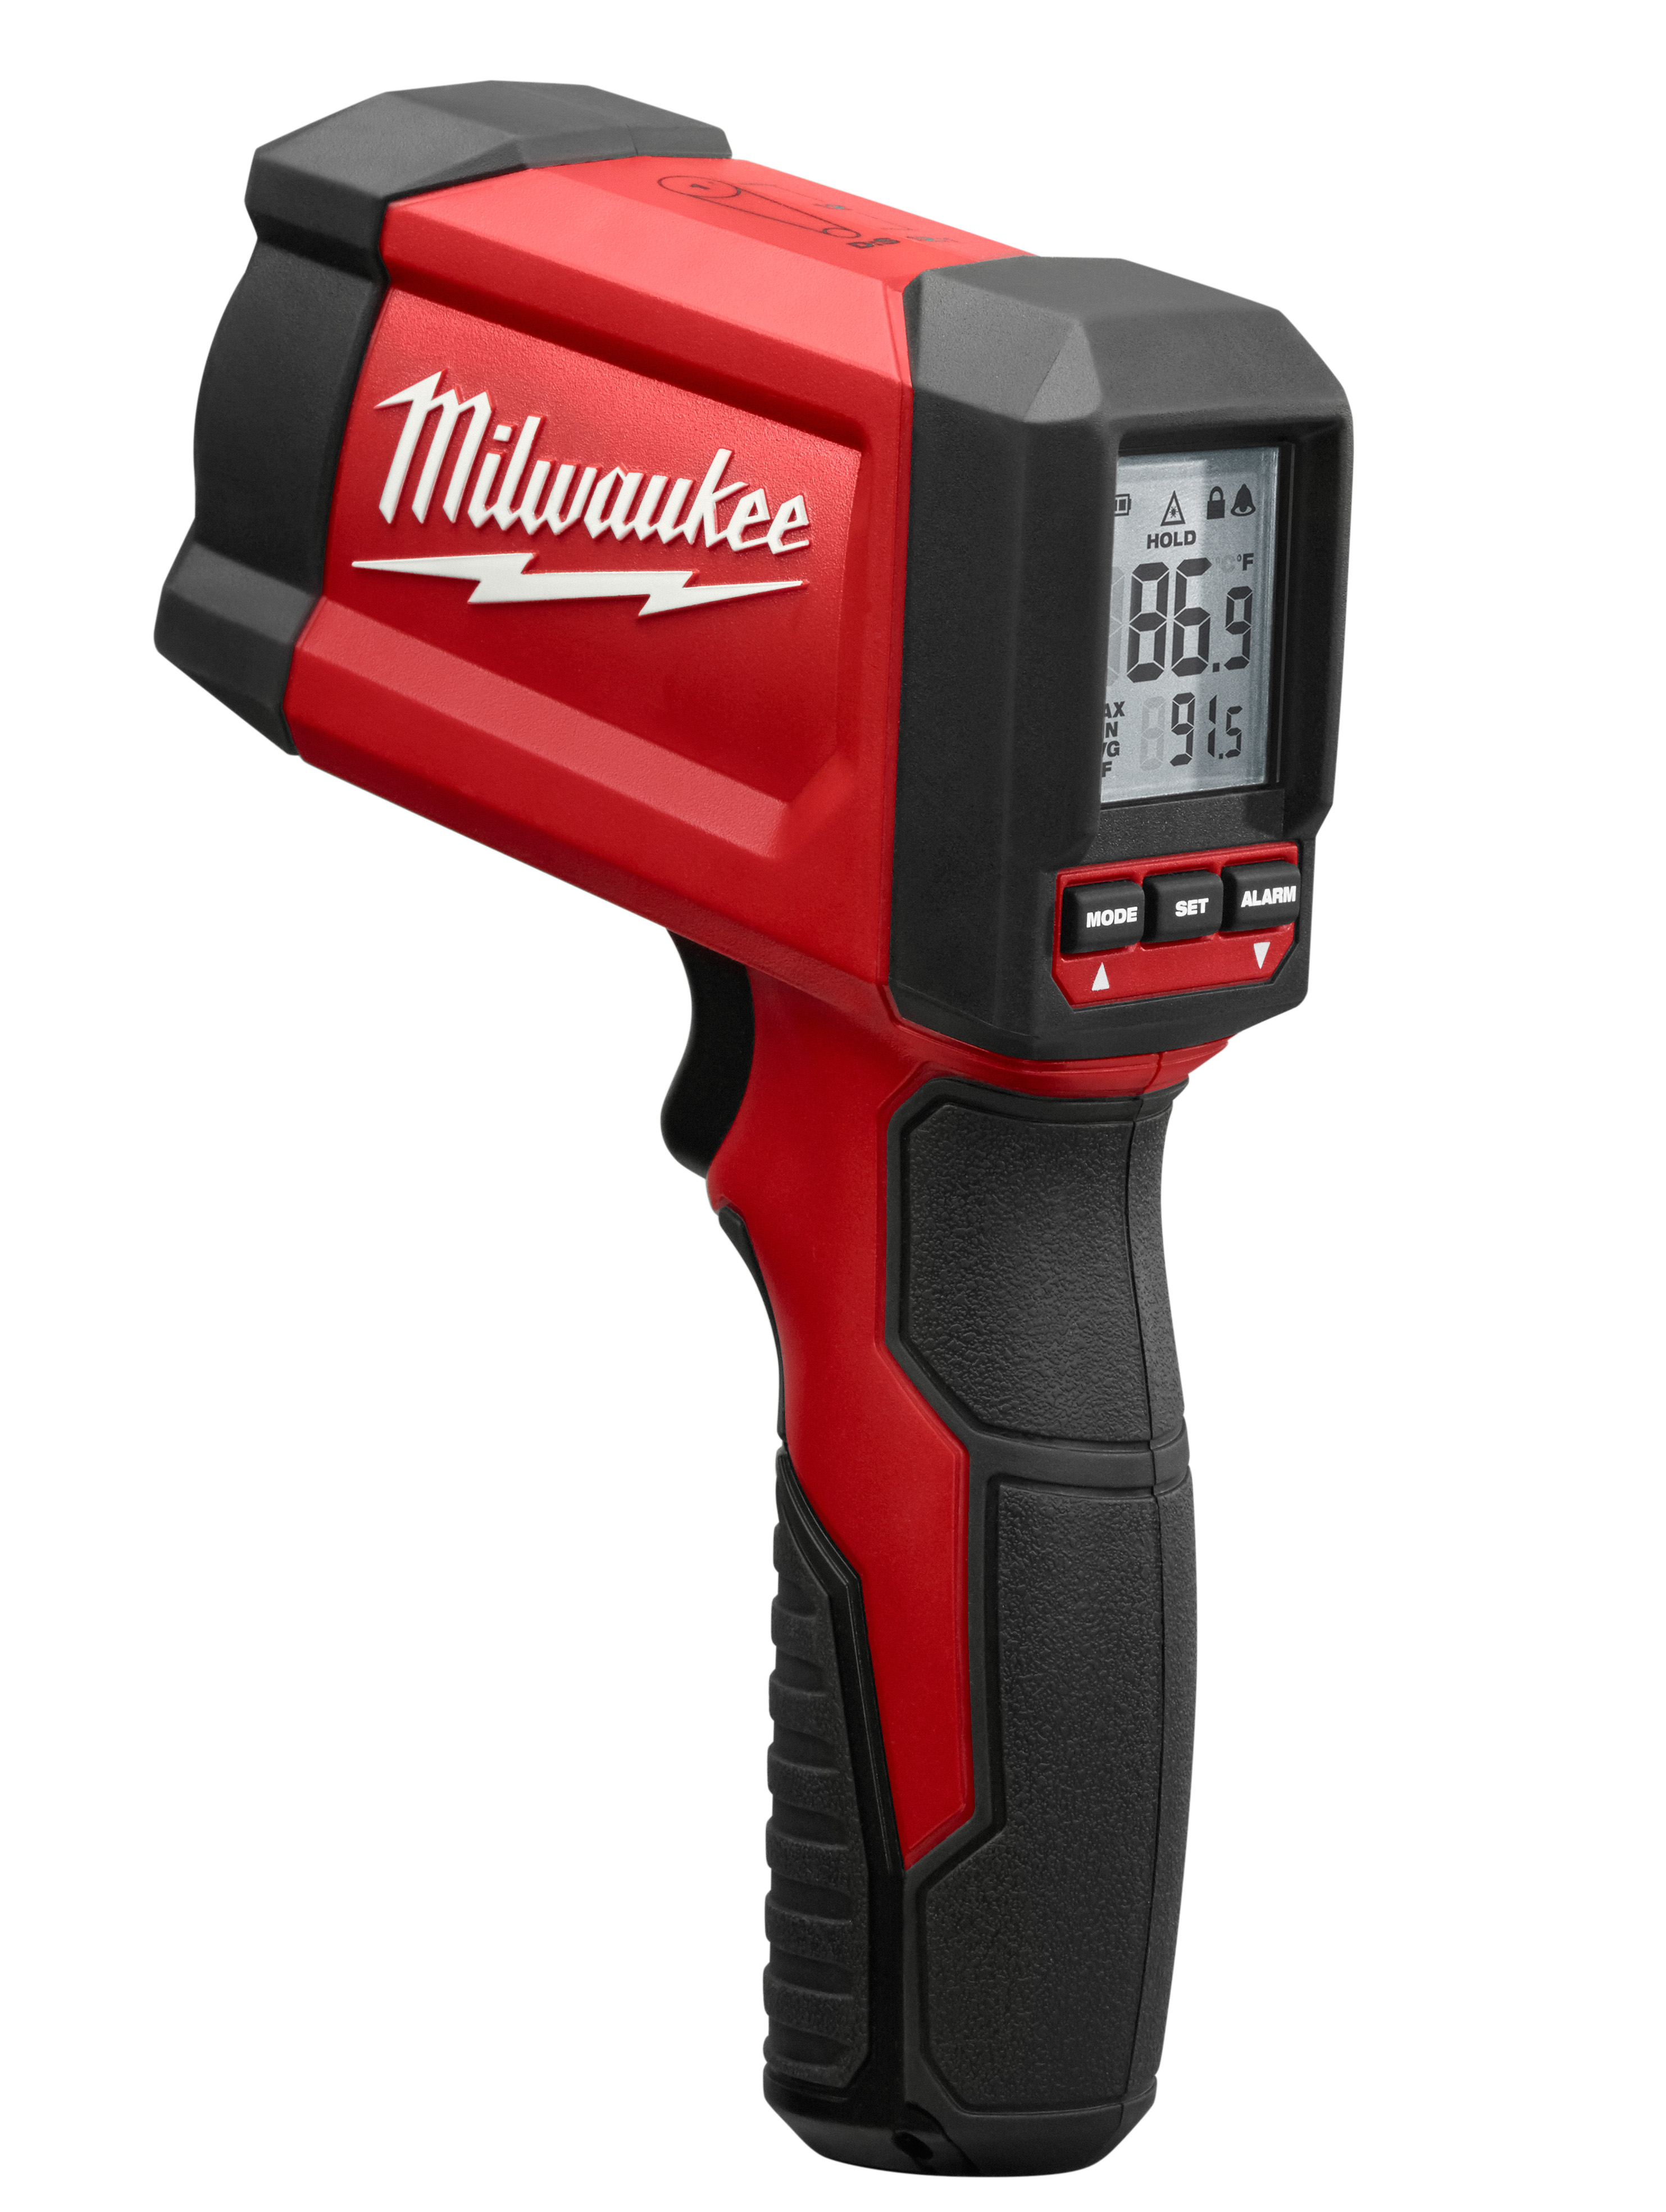 Milwaukee® TEMP-GUN™ 2268-20 Infrared Thermometer, -22 to 1472 deg F, +/-1.8 Accuracy, 12:1 Focus Spot, 0.96 Fixed, 9 VDC Alkaline Battery